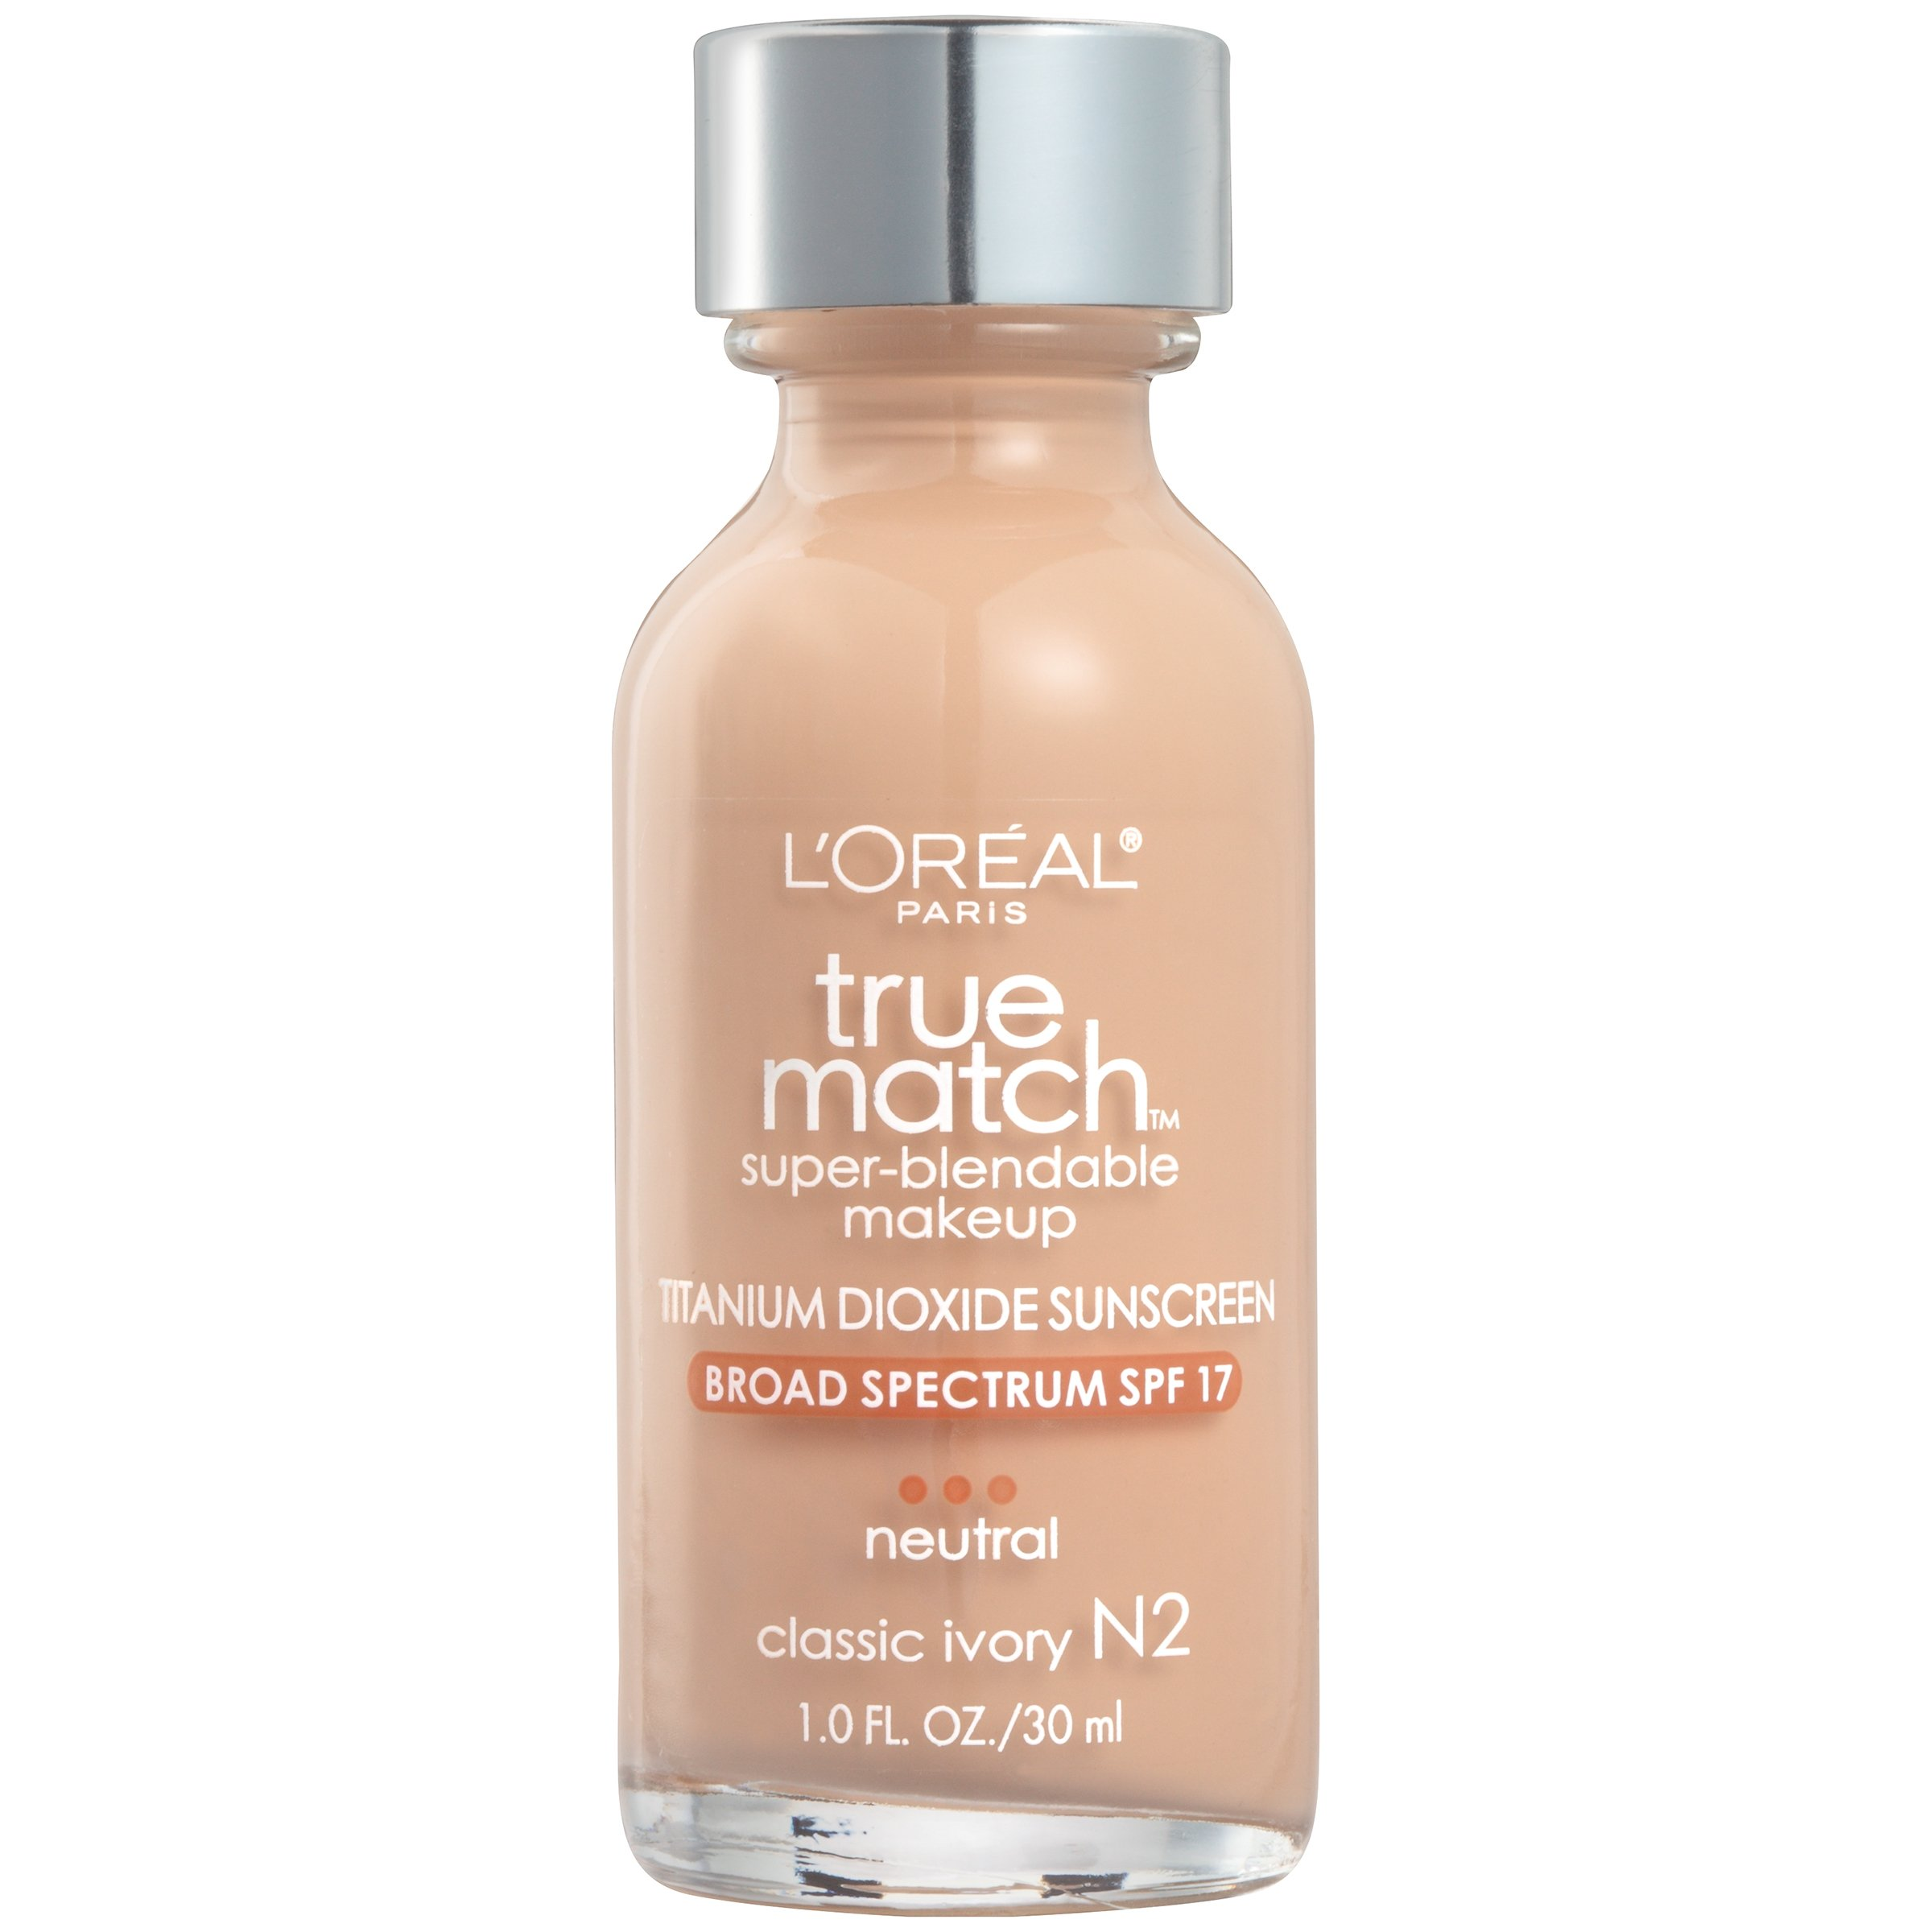 L'Oréal Paris True Match Super-Blendable Foundation Makeup, Classic Ivory, 1 fl. oz.